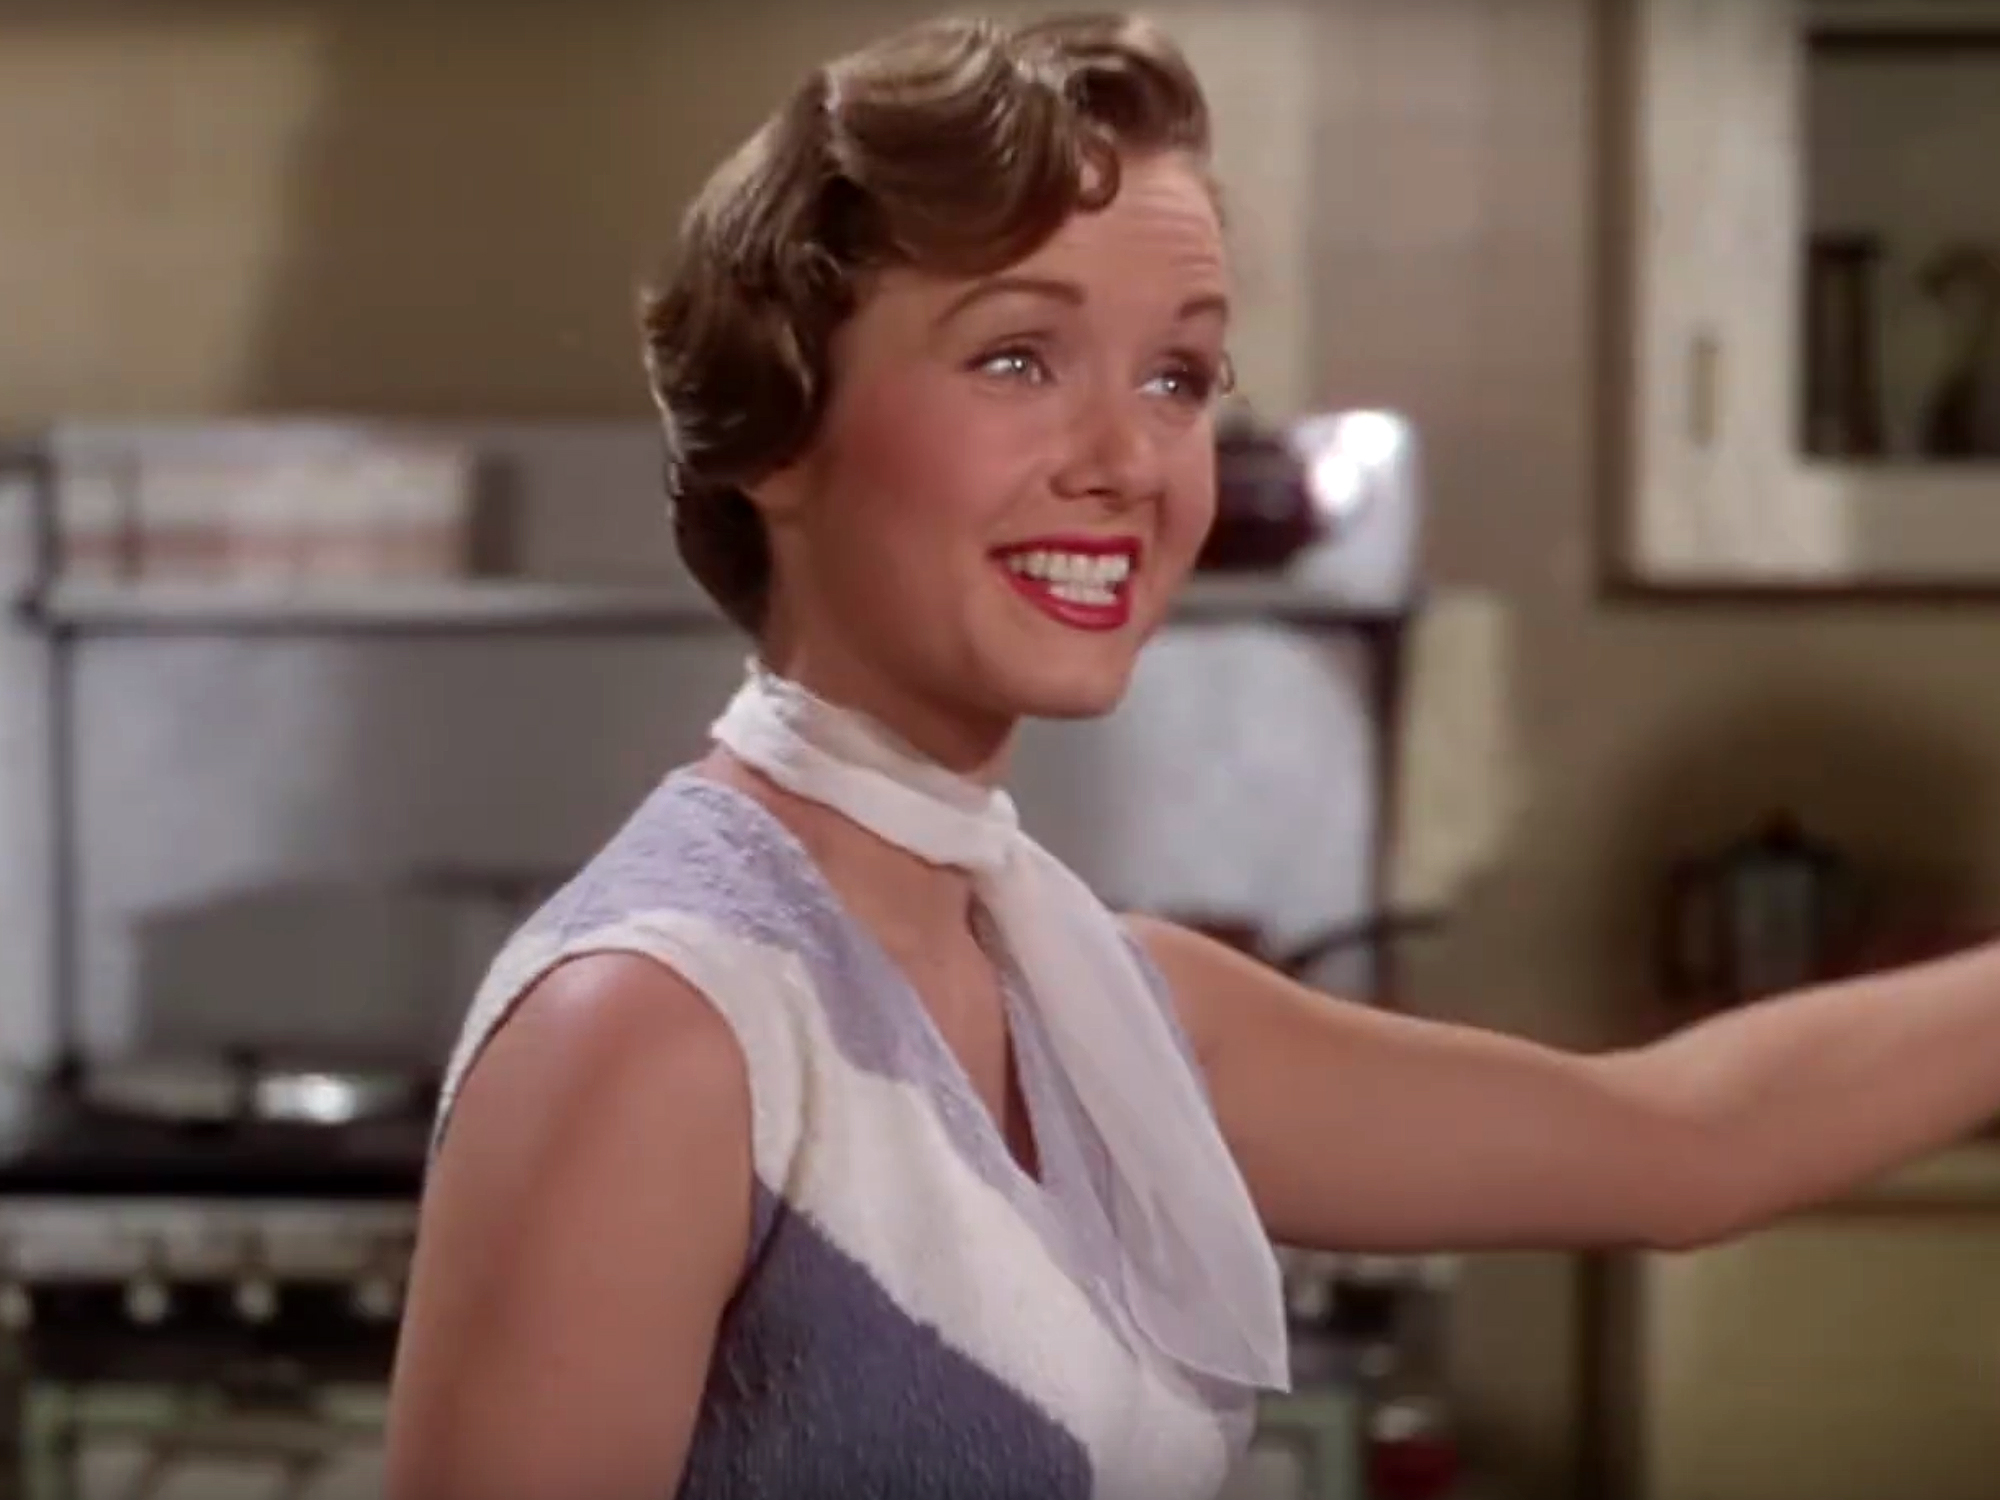 WATCH: Debbie Reynolds' Legendary 'Singin' in the Rain' Moments